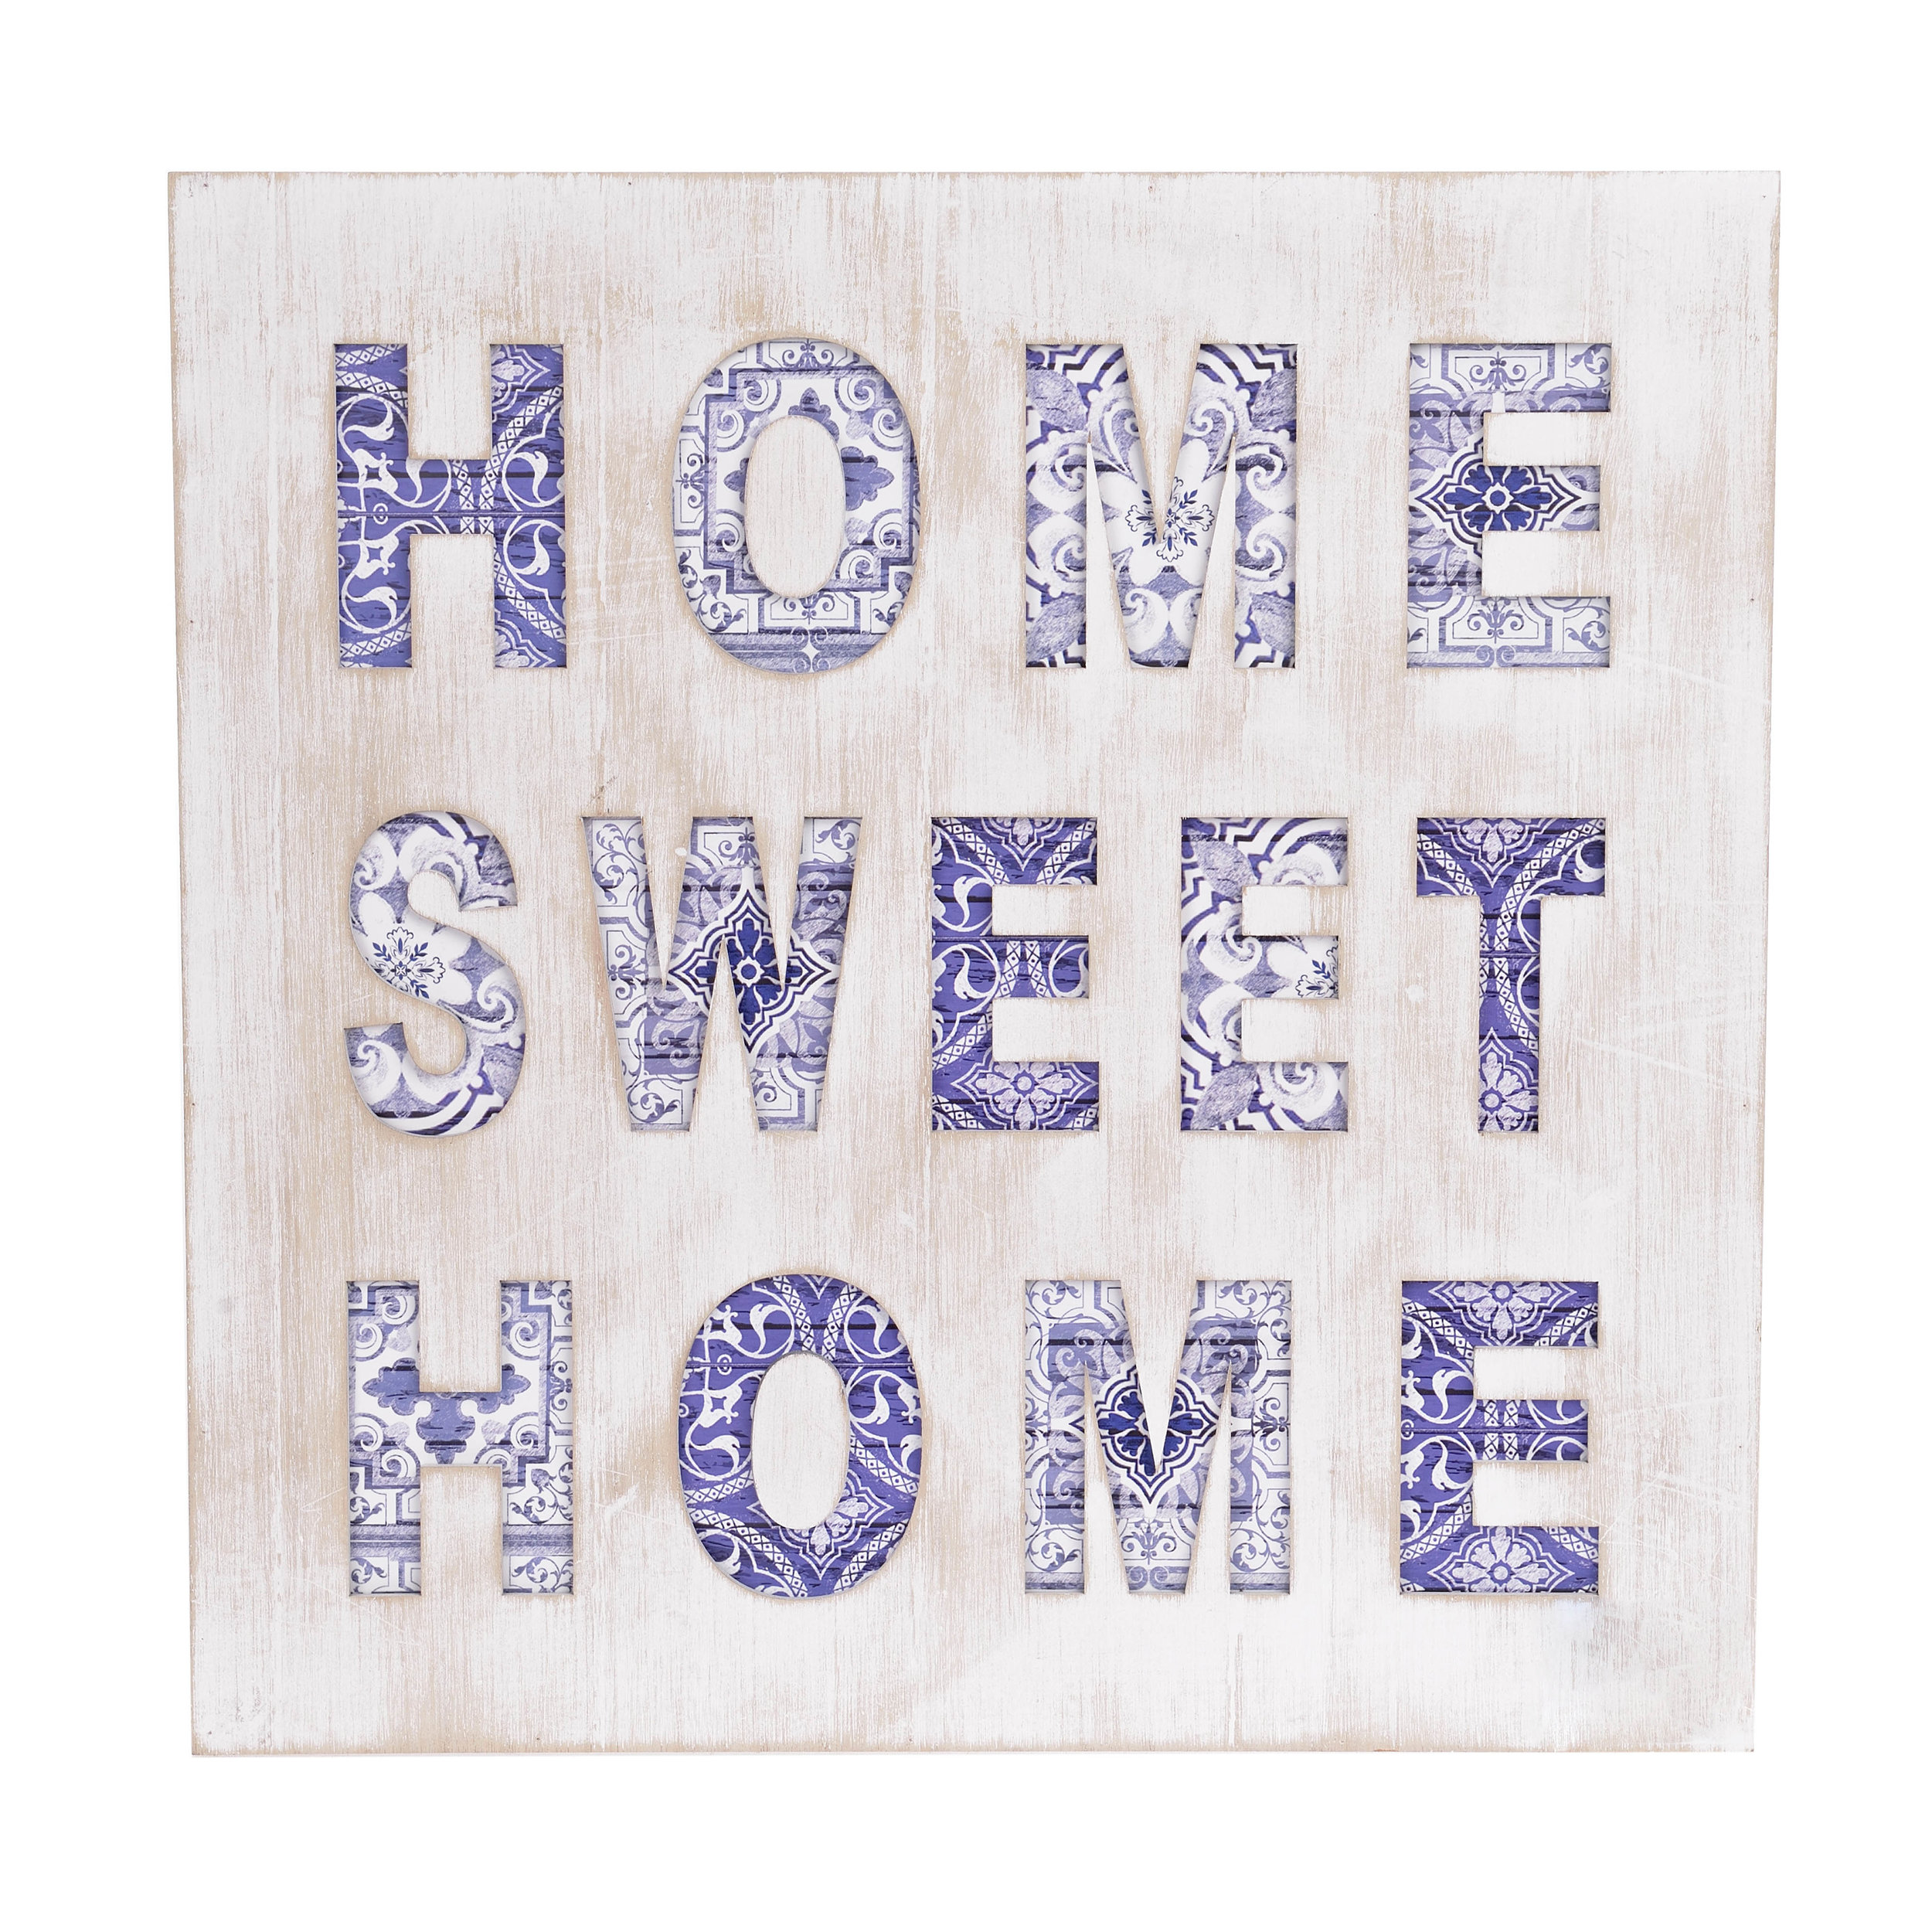 €25 WOODEN WALL DECO 'HOME' 40X2X40